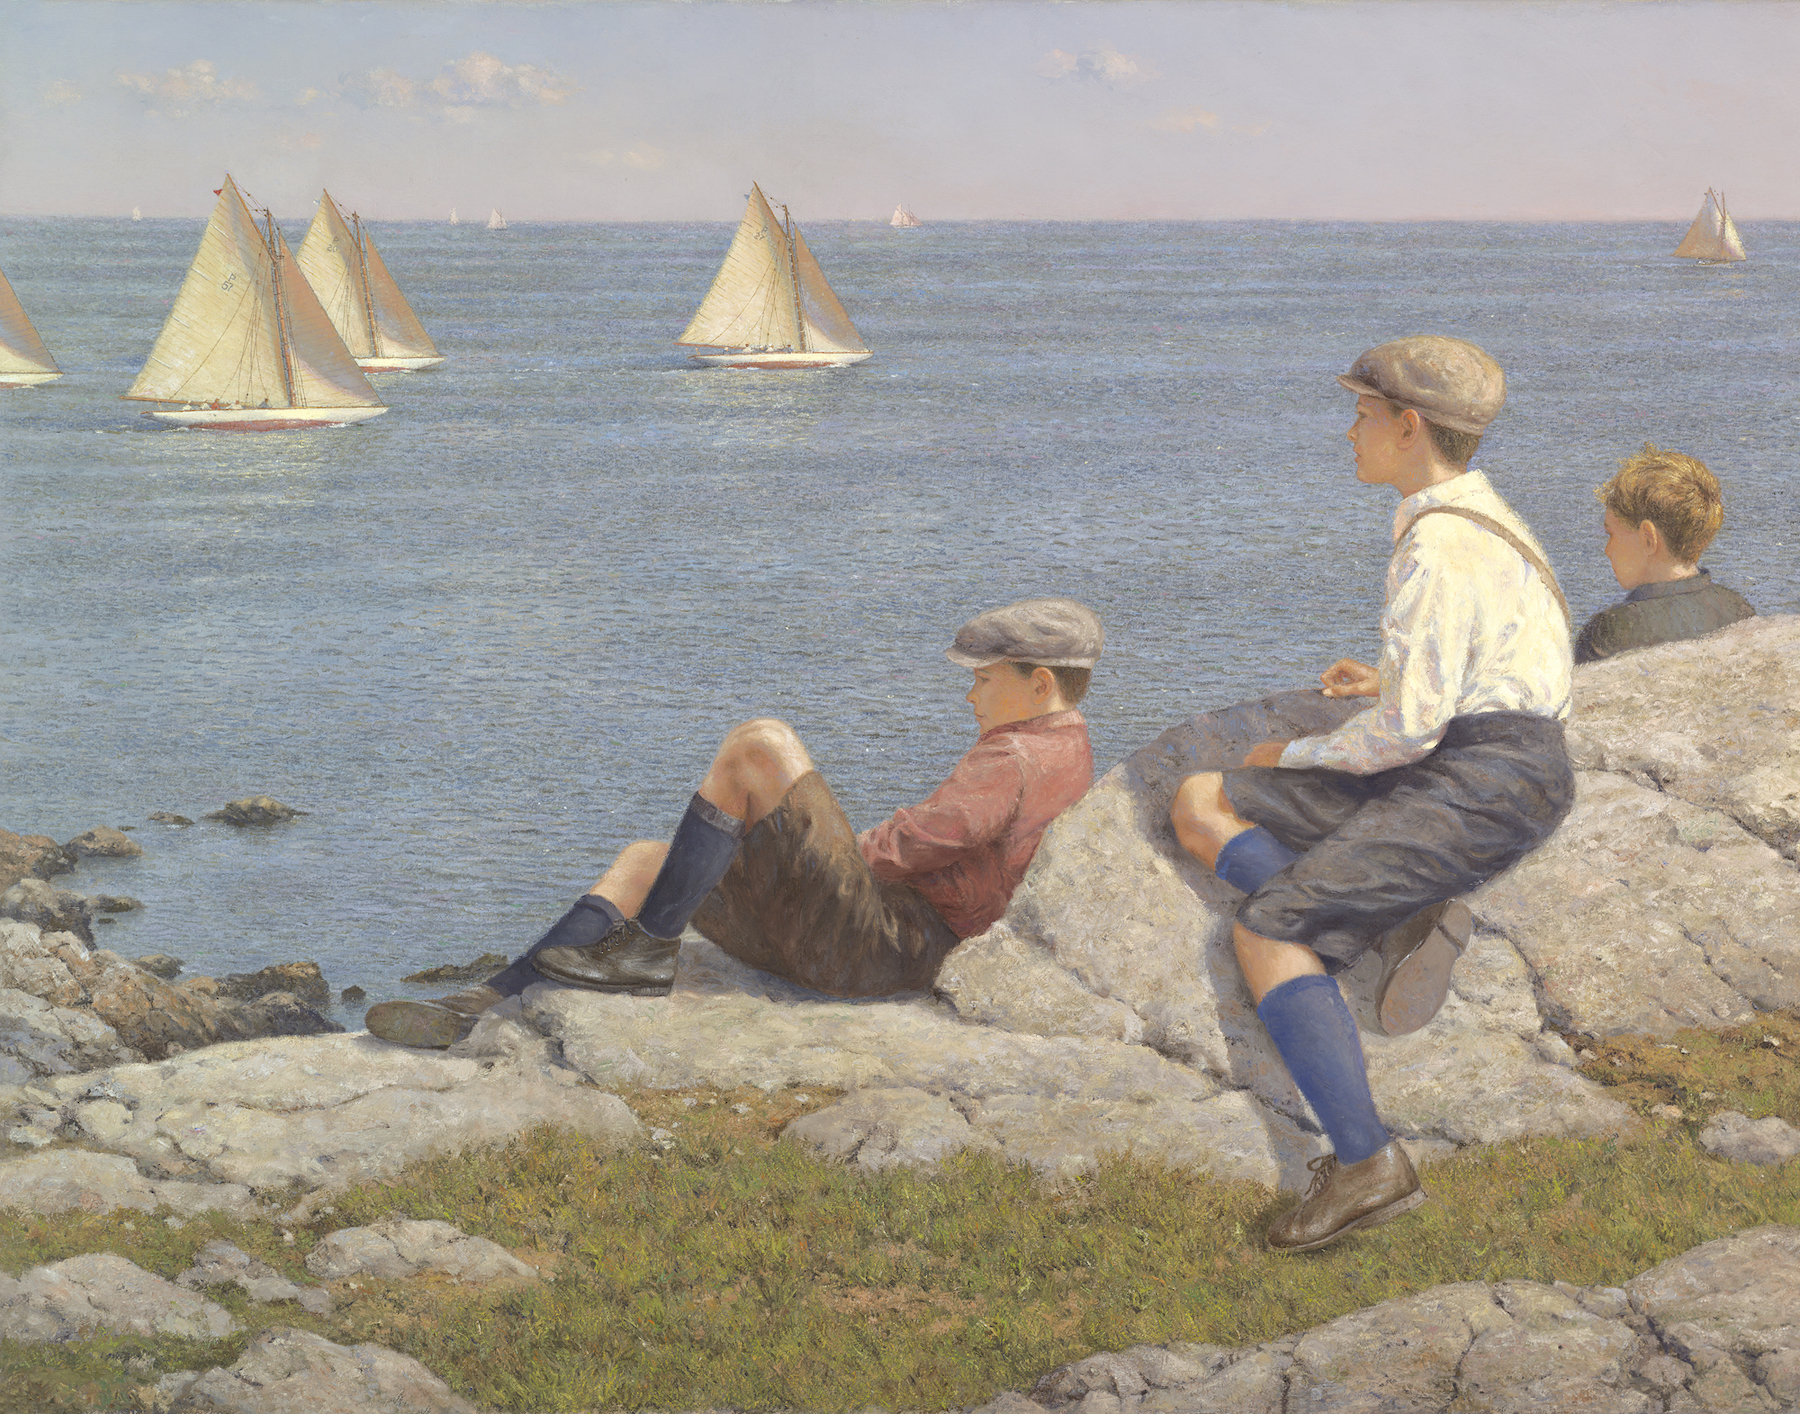 Watching The Race C. 1915, Marblehead